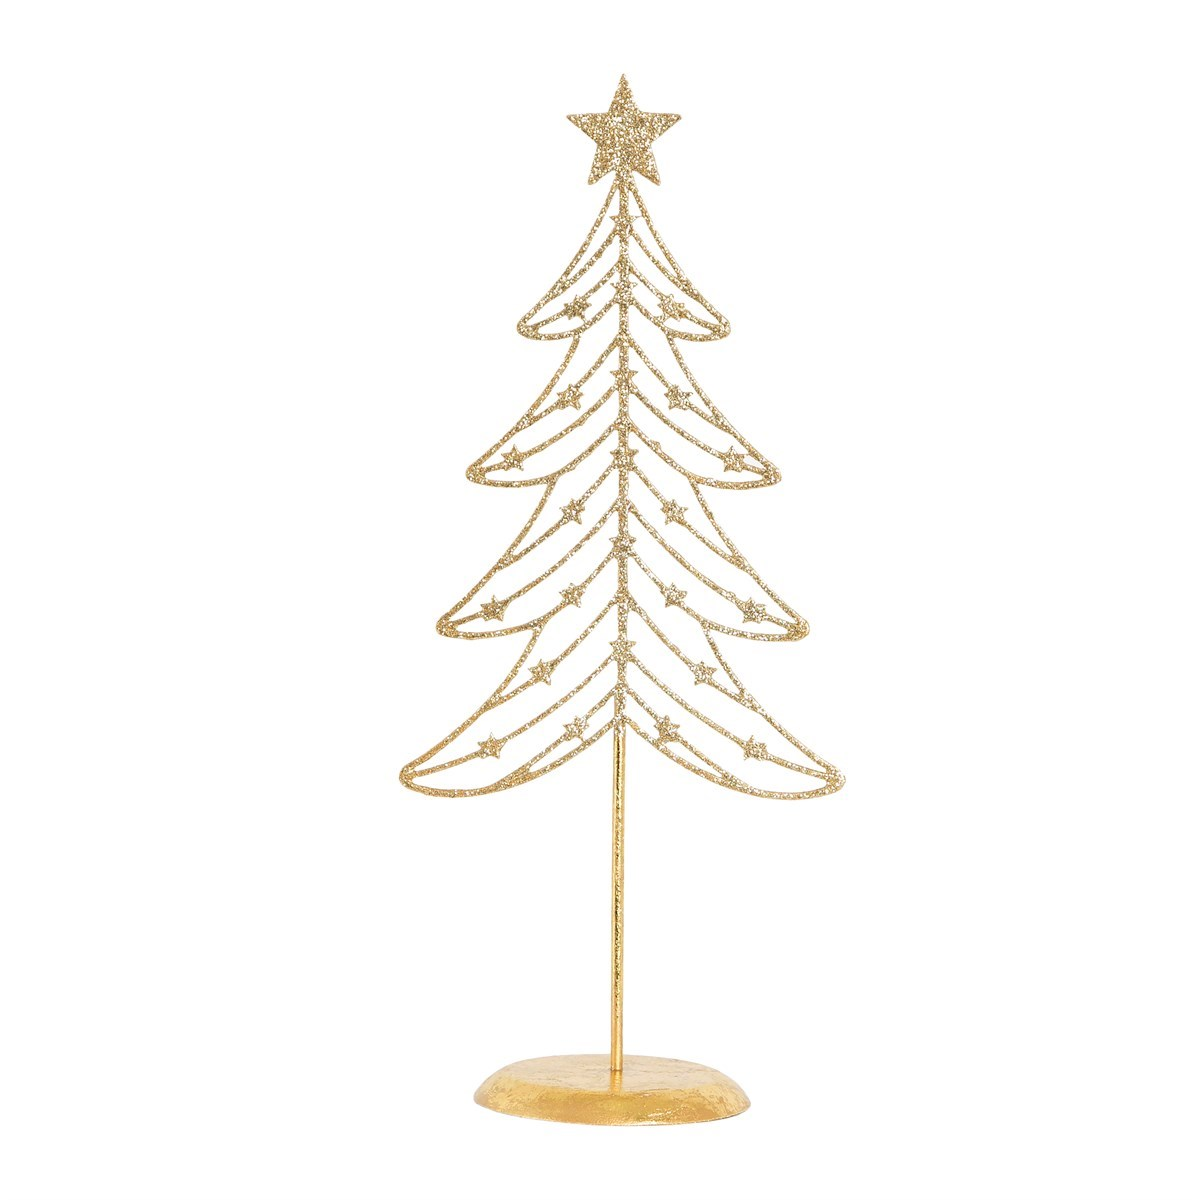 Wire Christmas Tree.Gold Glitter Wire Christmas Tree Decoration